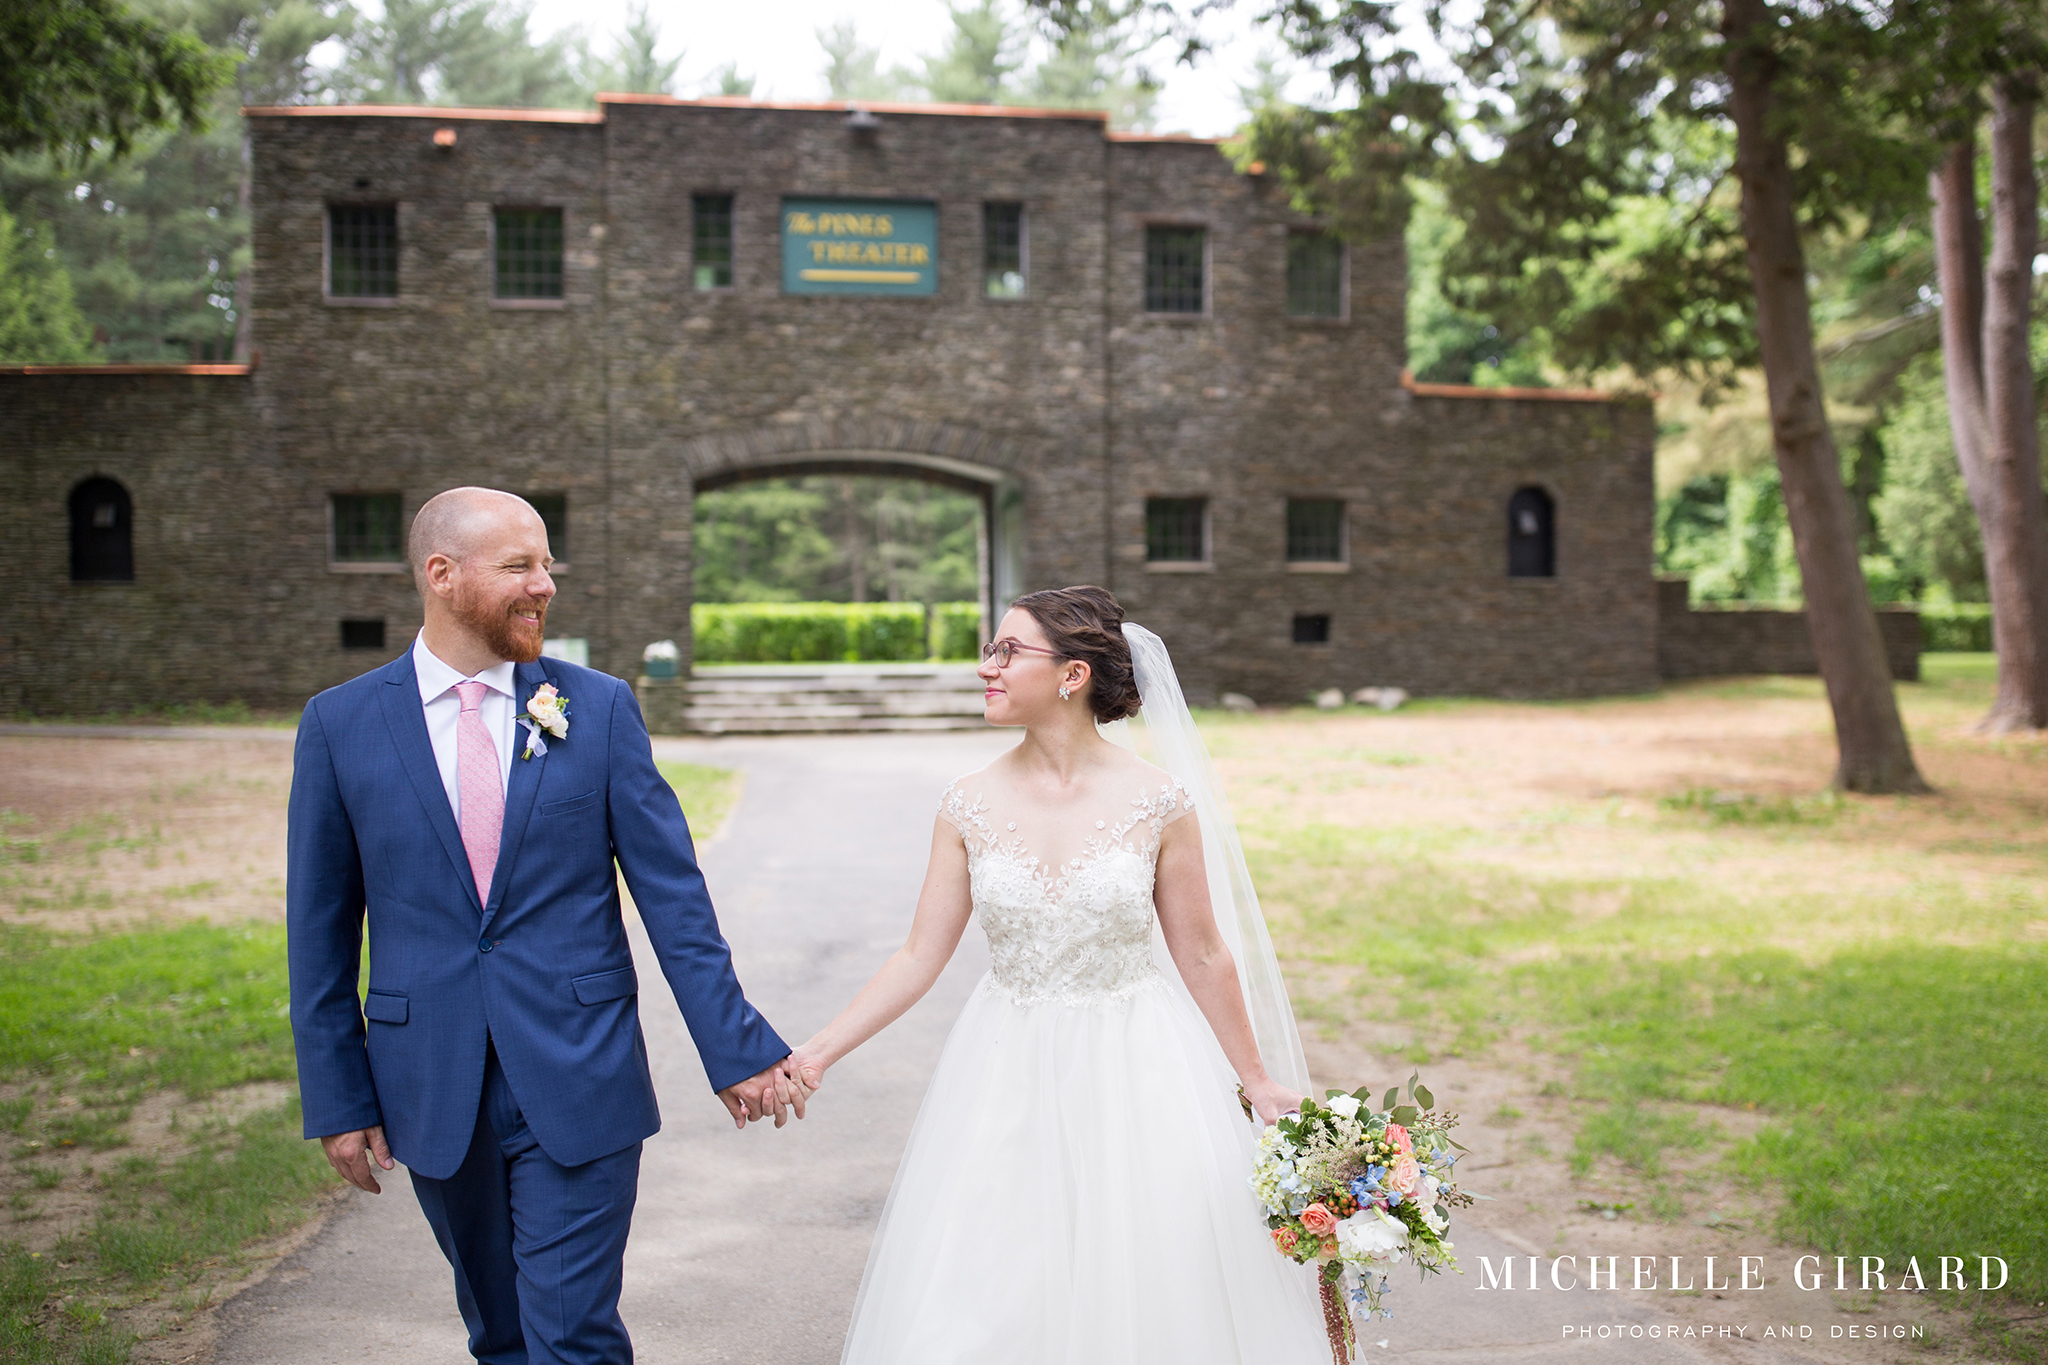 GardenHouse_LookParkWedding_NorthamptonMA_MichelleGirardPhotography6b.jpg